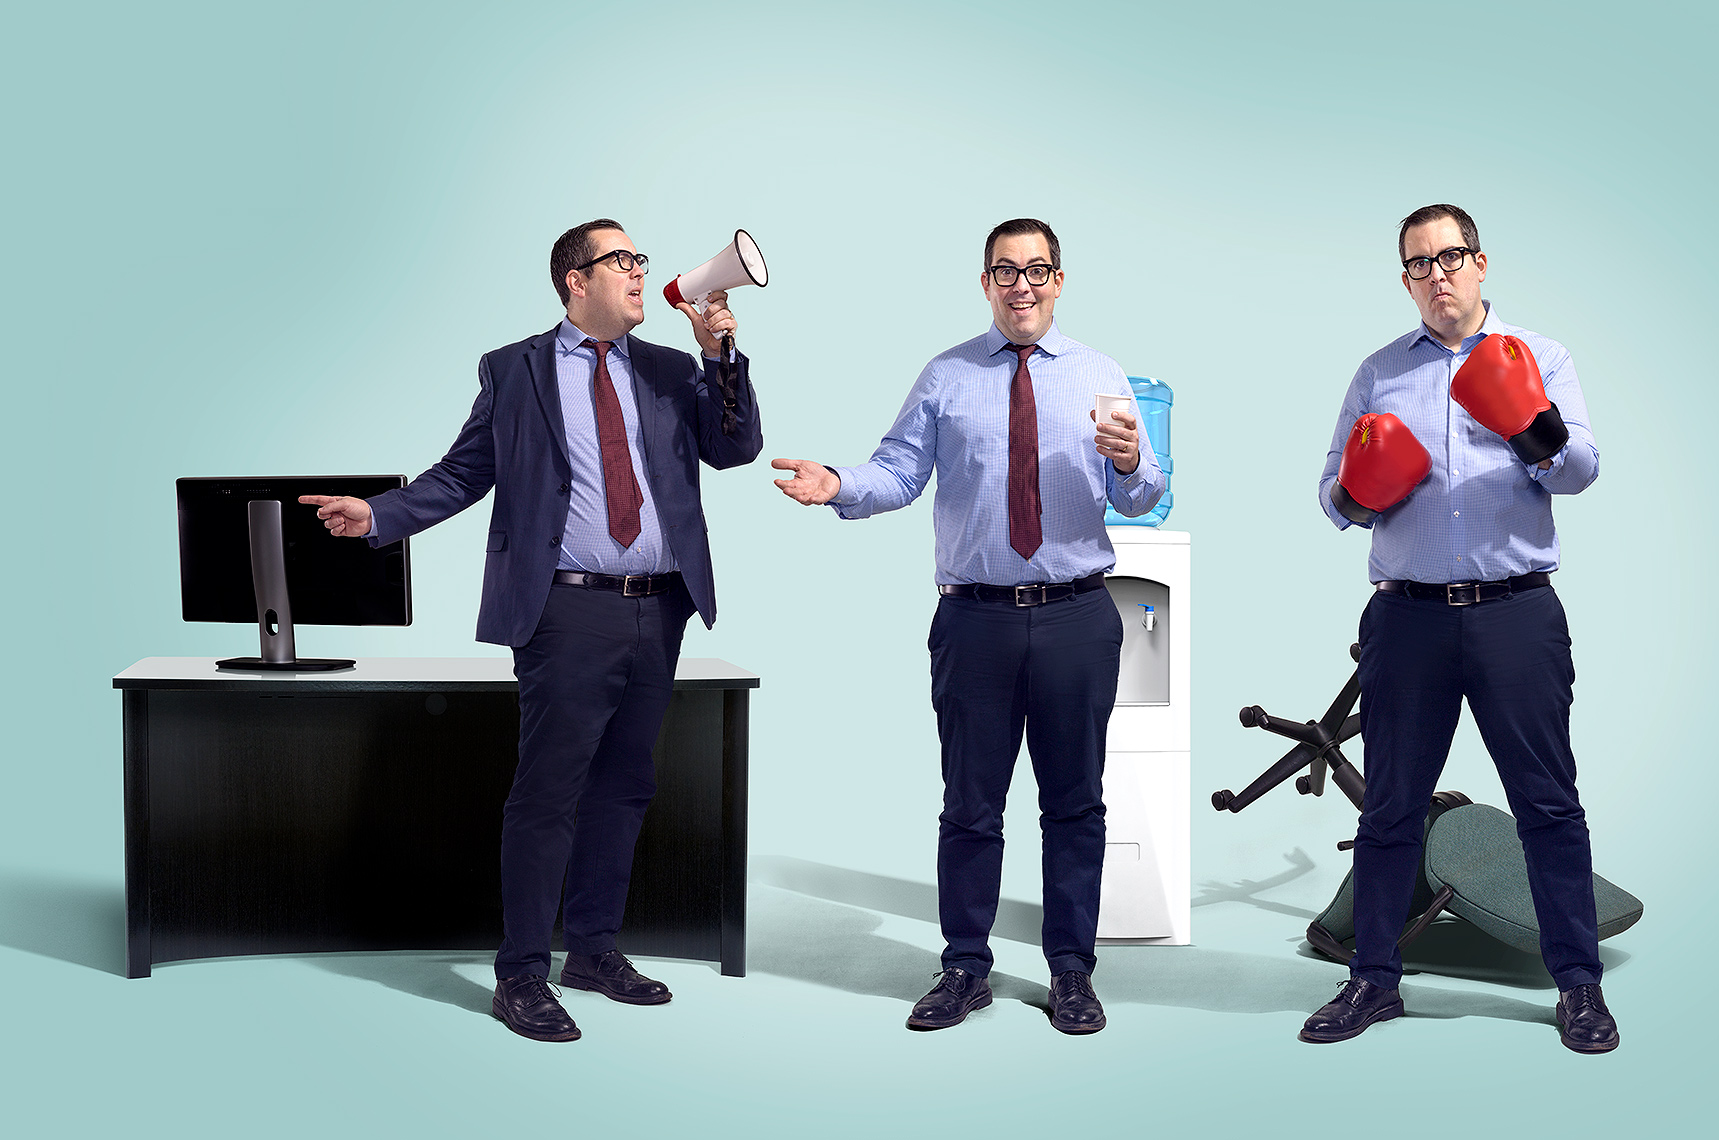 Office boss types conceptual photography by John Kuczala